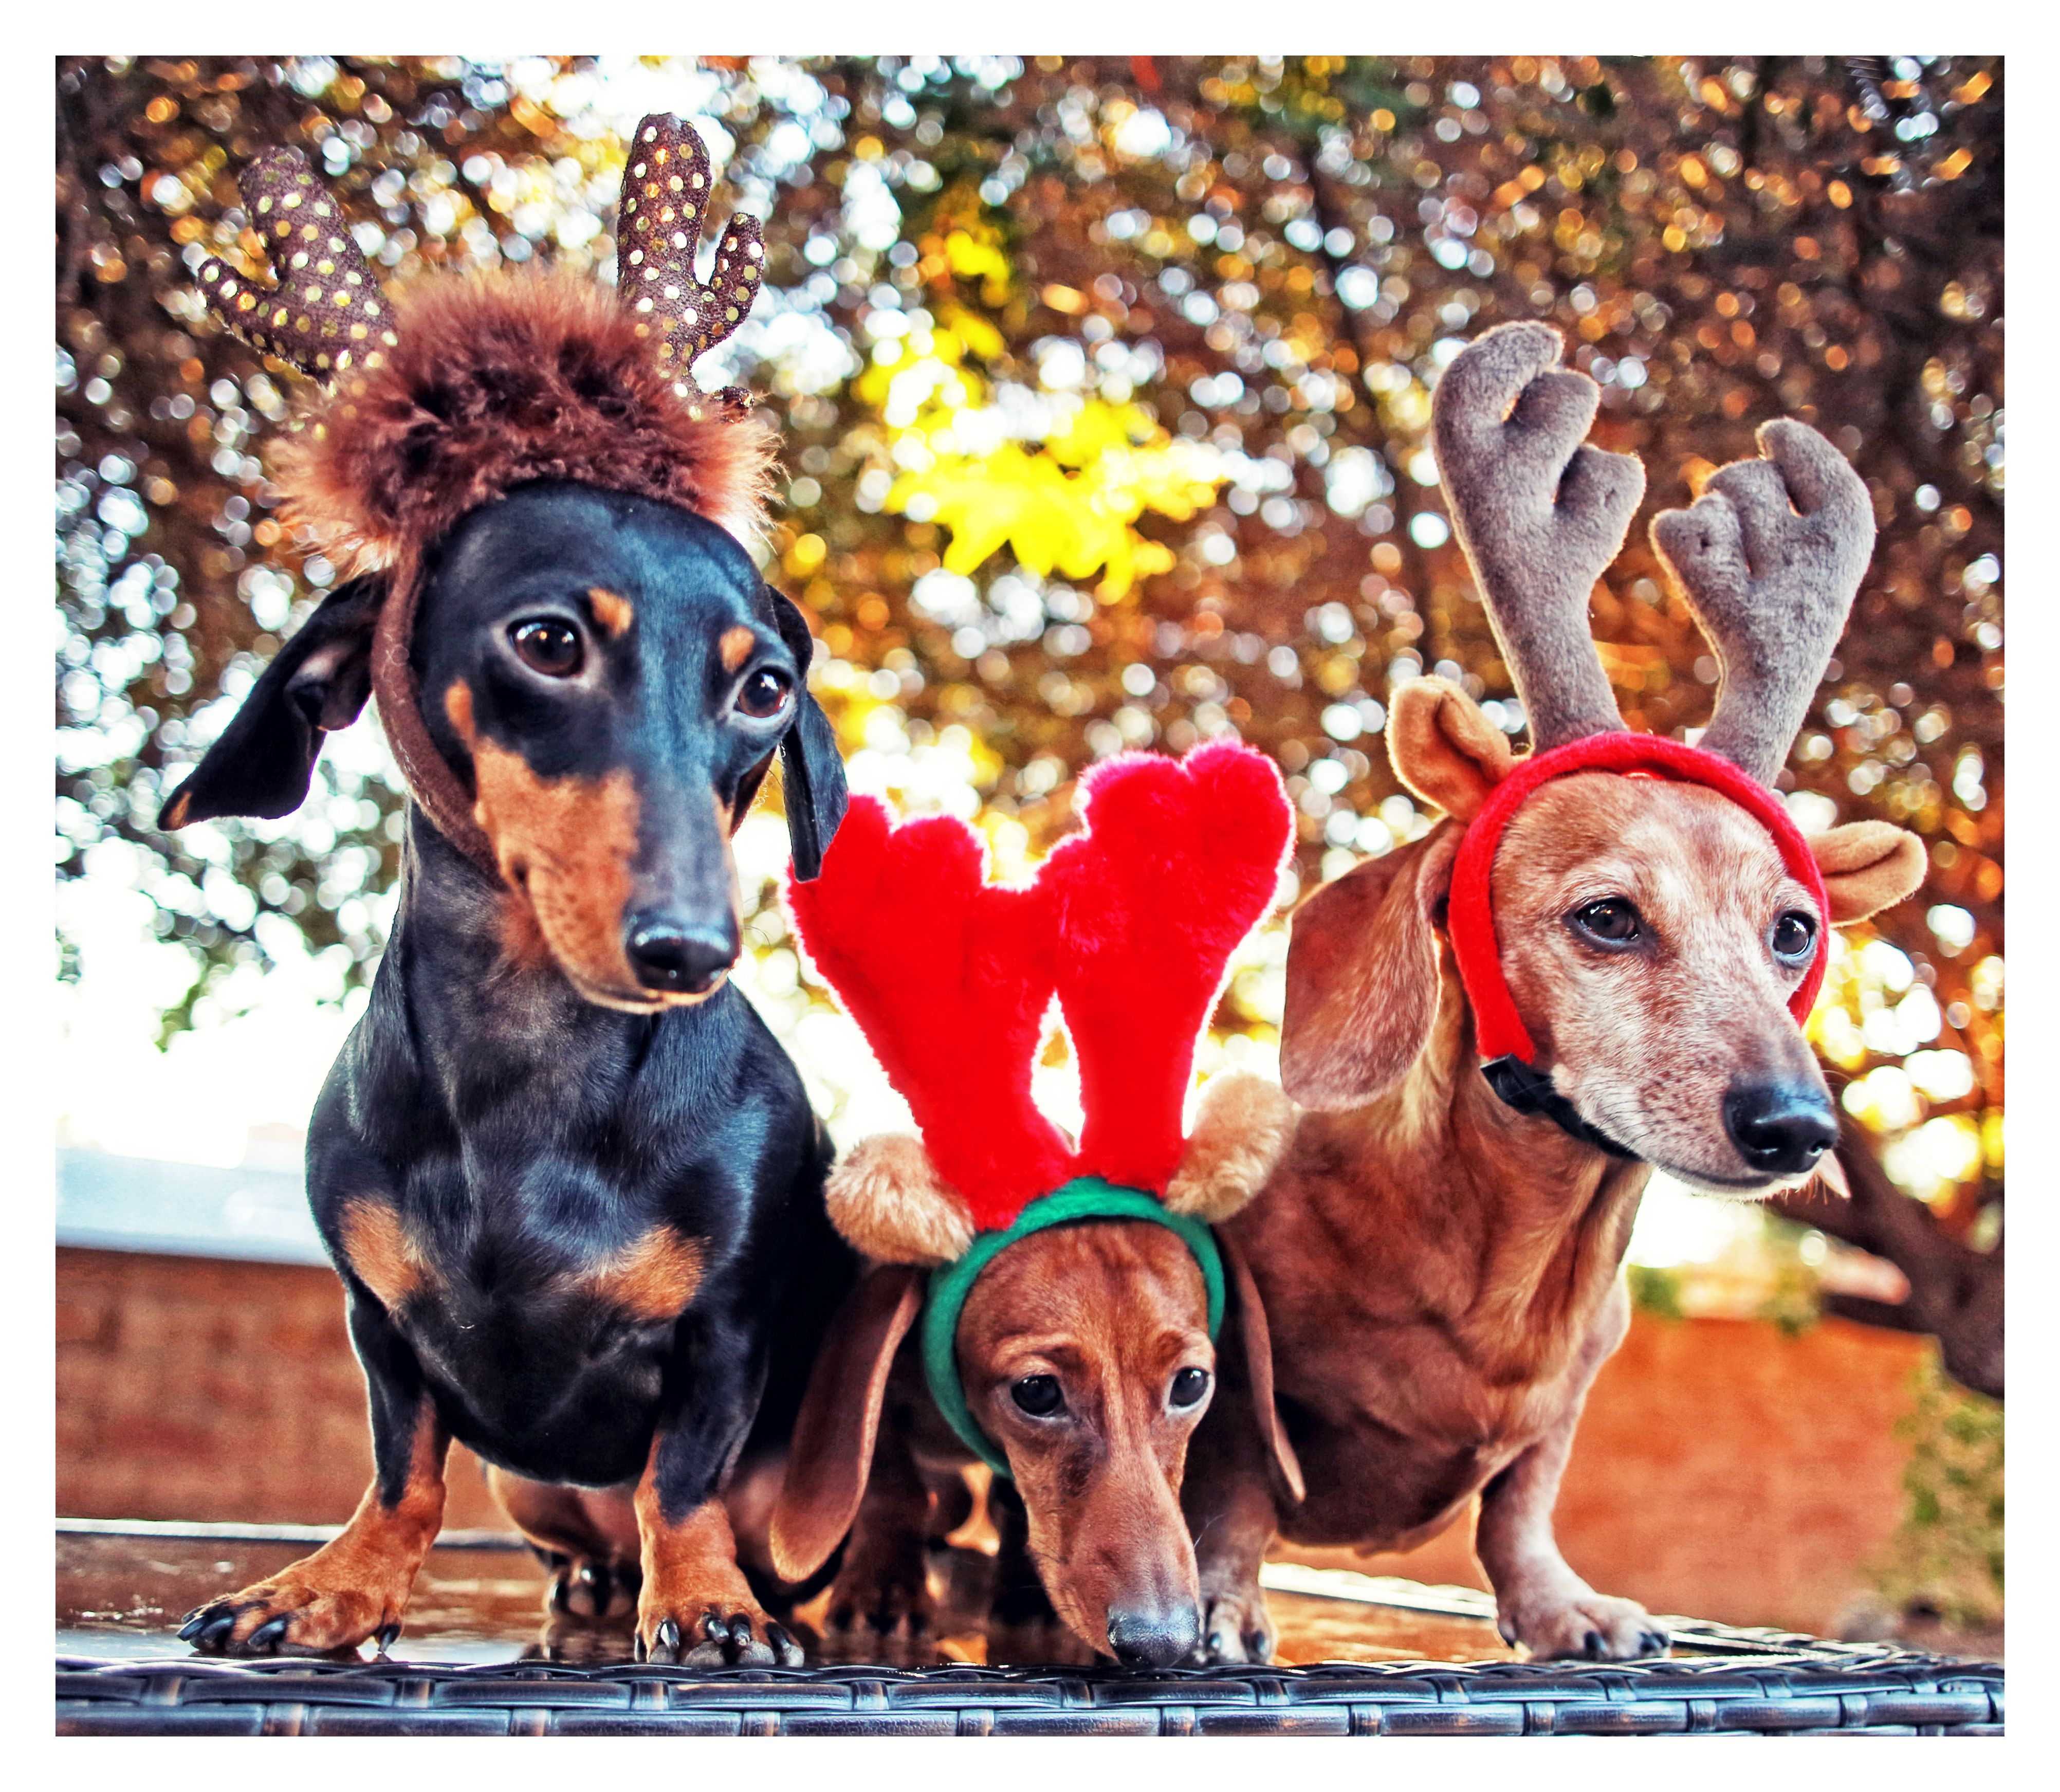 Dachshund Christmas Day Merry Christmas Card Puppy Holiday Dogs Santa Claus Dog Puppies Xmas Doxie